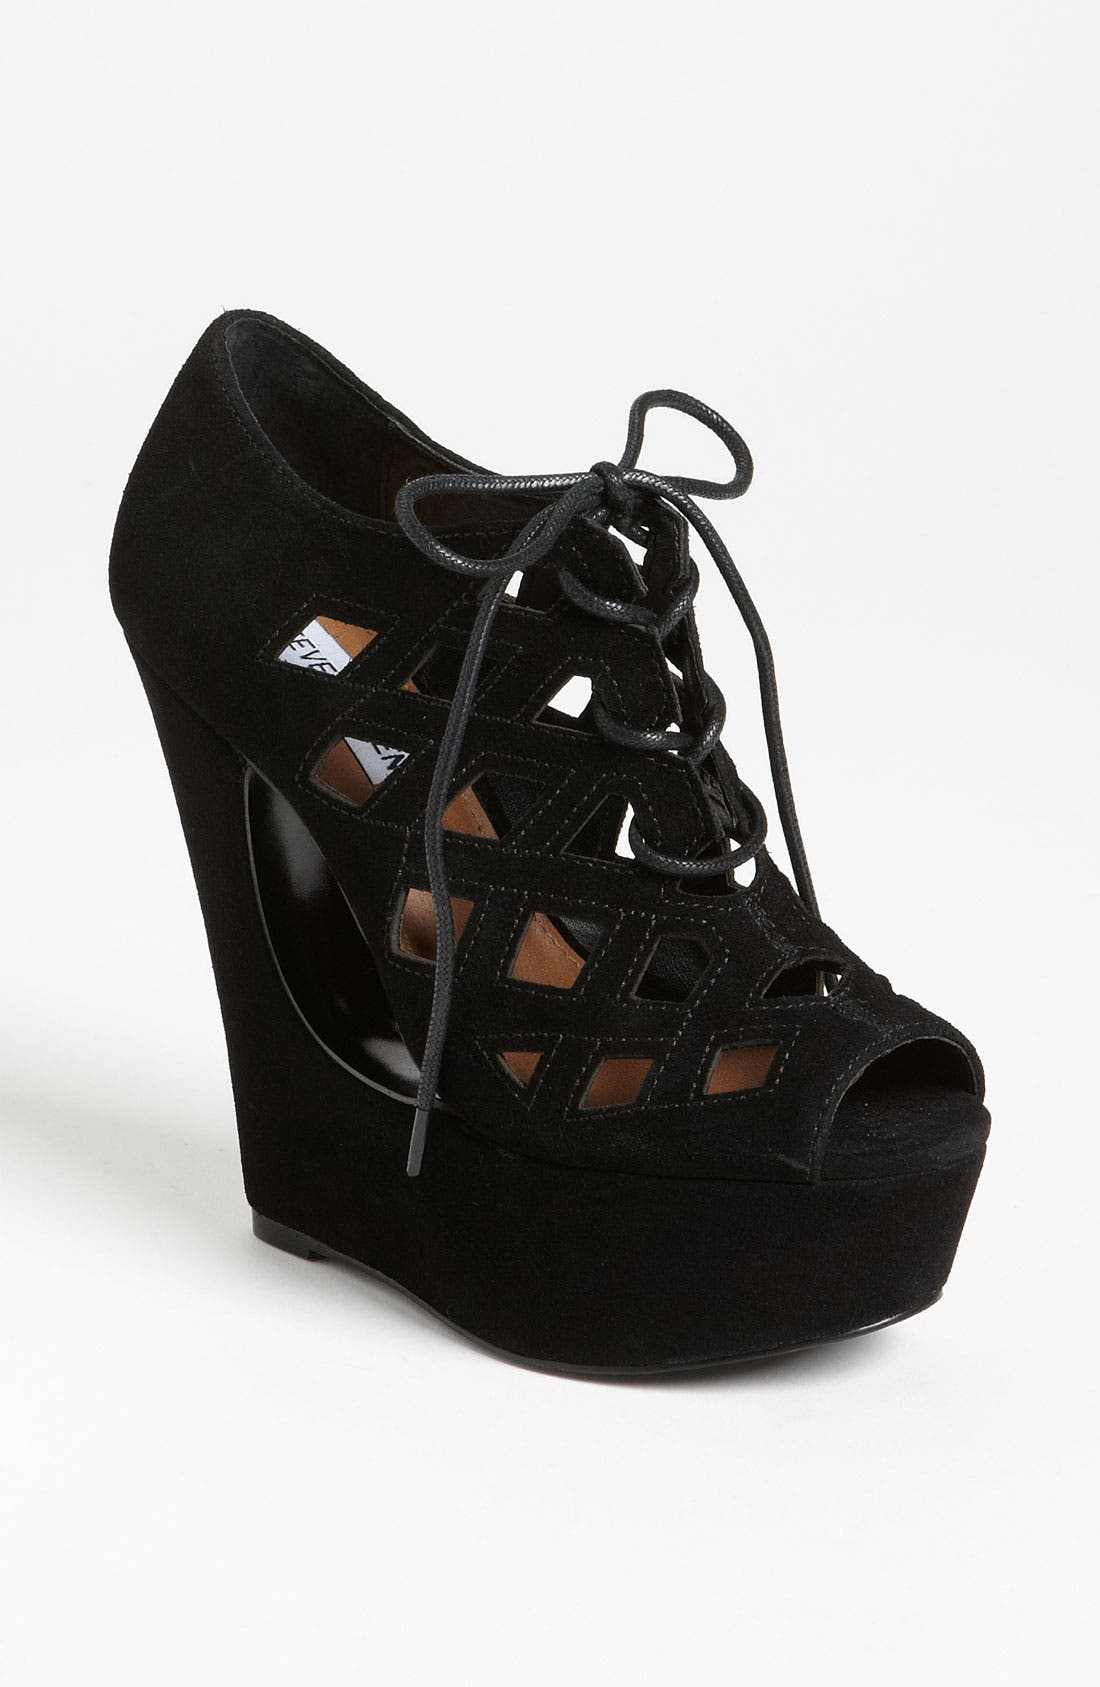 STEVE MADDEN 'Daade' Wedge, Main, color, 006